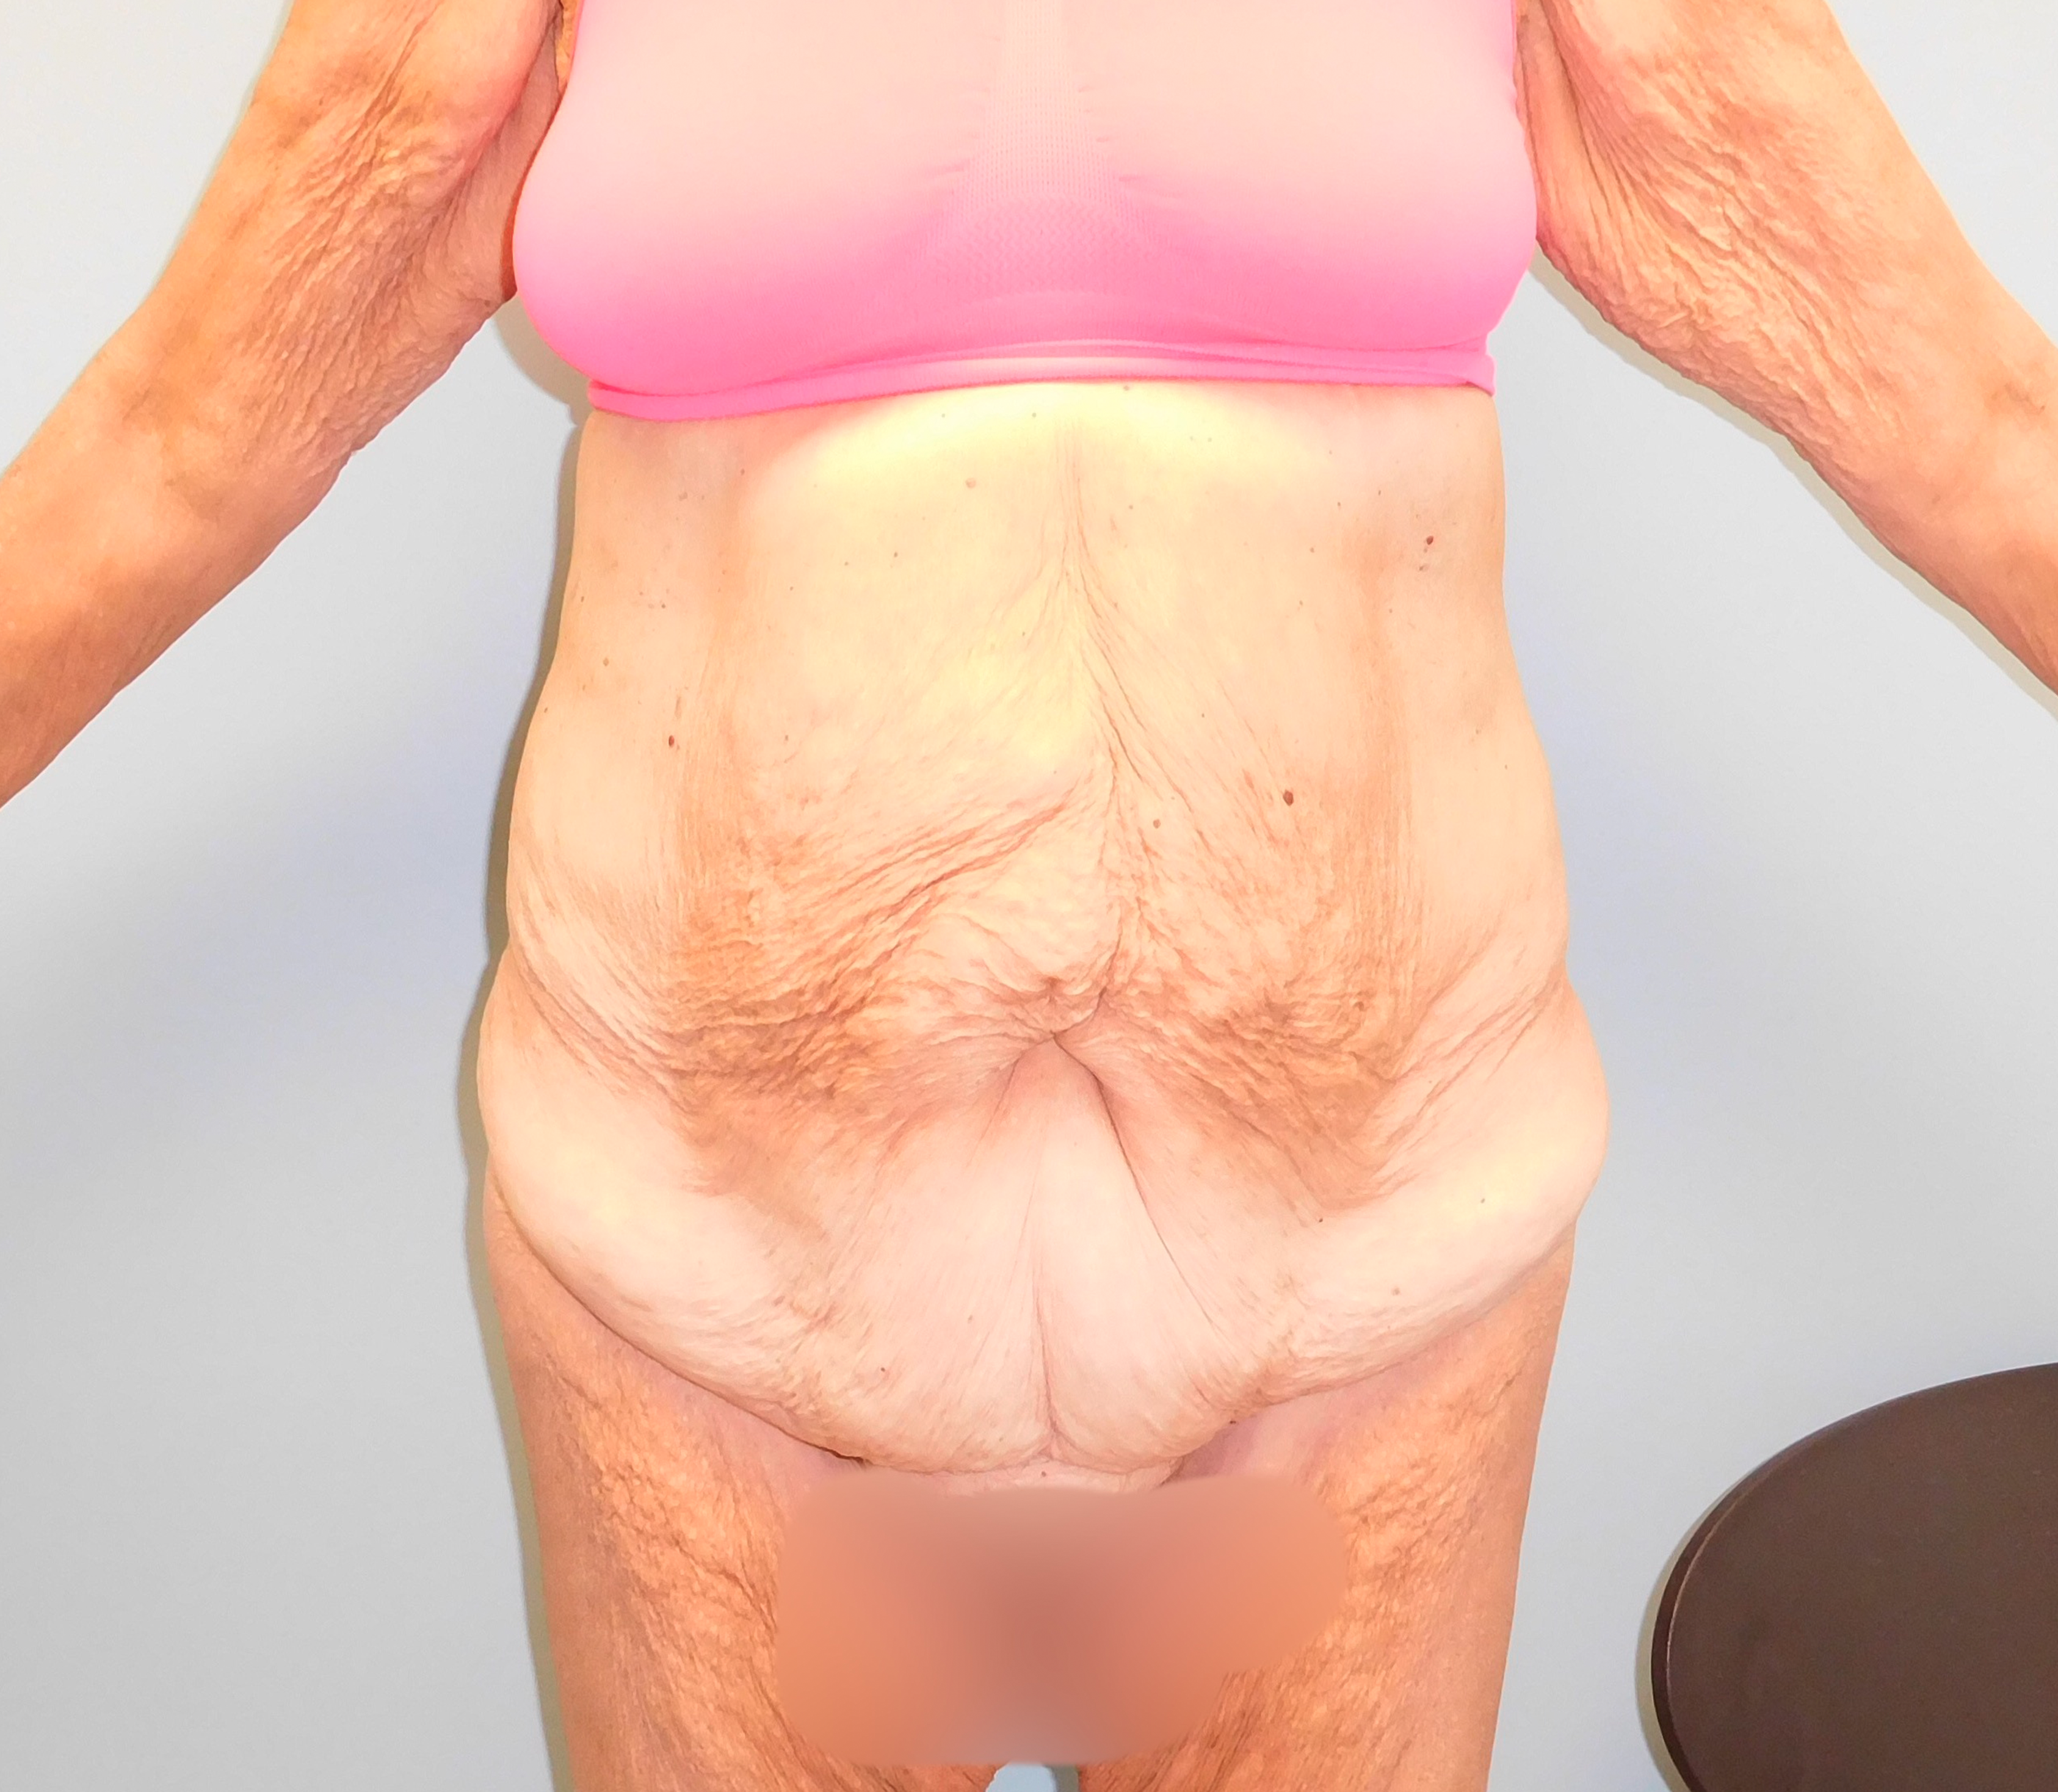 Before photo of tummy tuck performed at SOMC Plastic Surgery